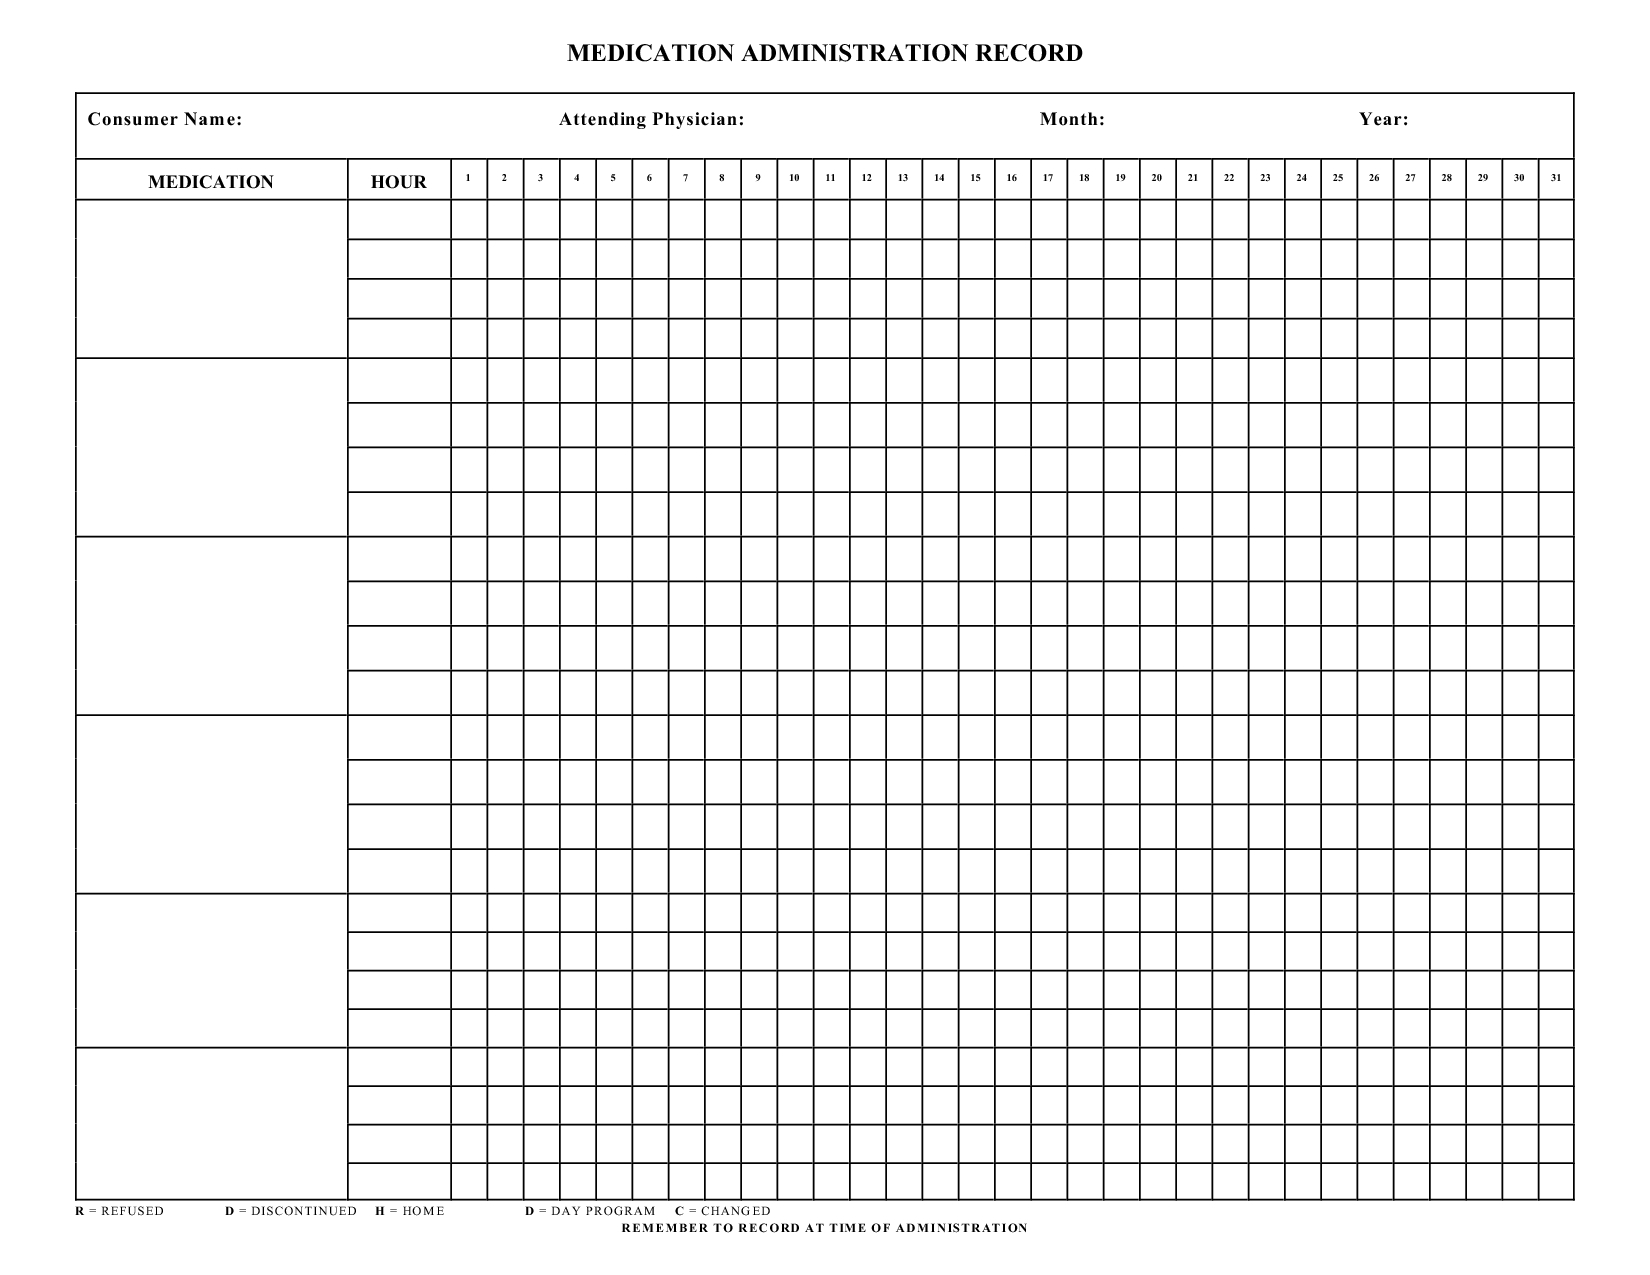 Blank+Medication+Administration+Record+Template | Mrs. Summers - Free Printable Medication Chart